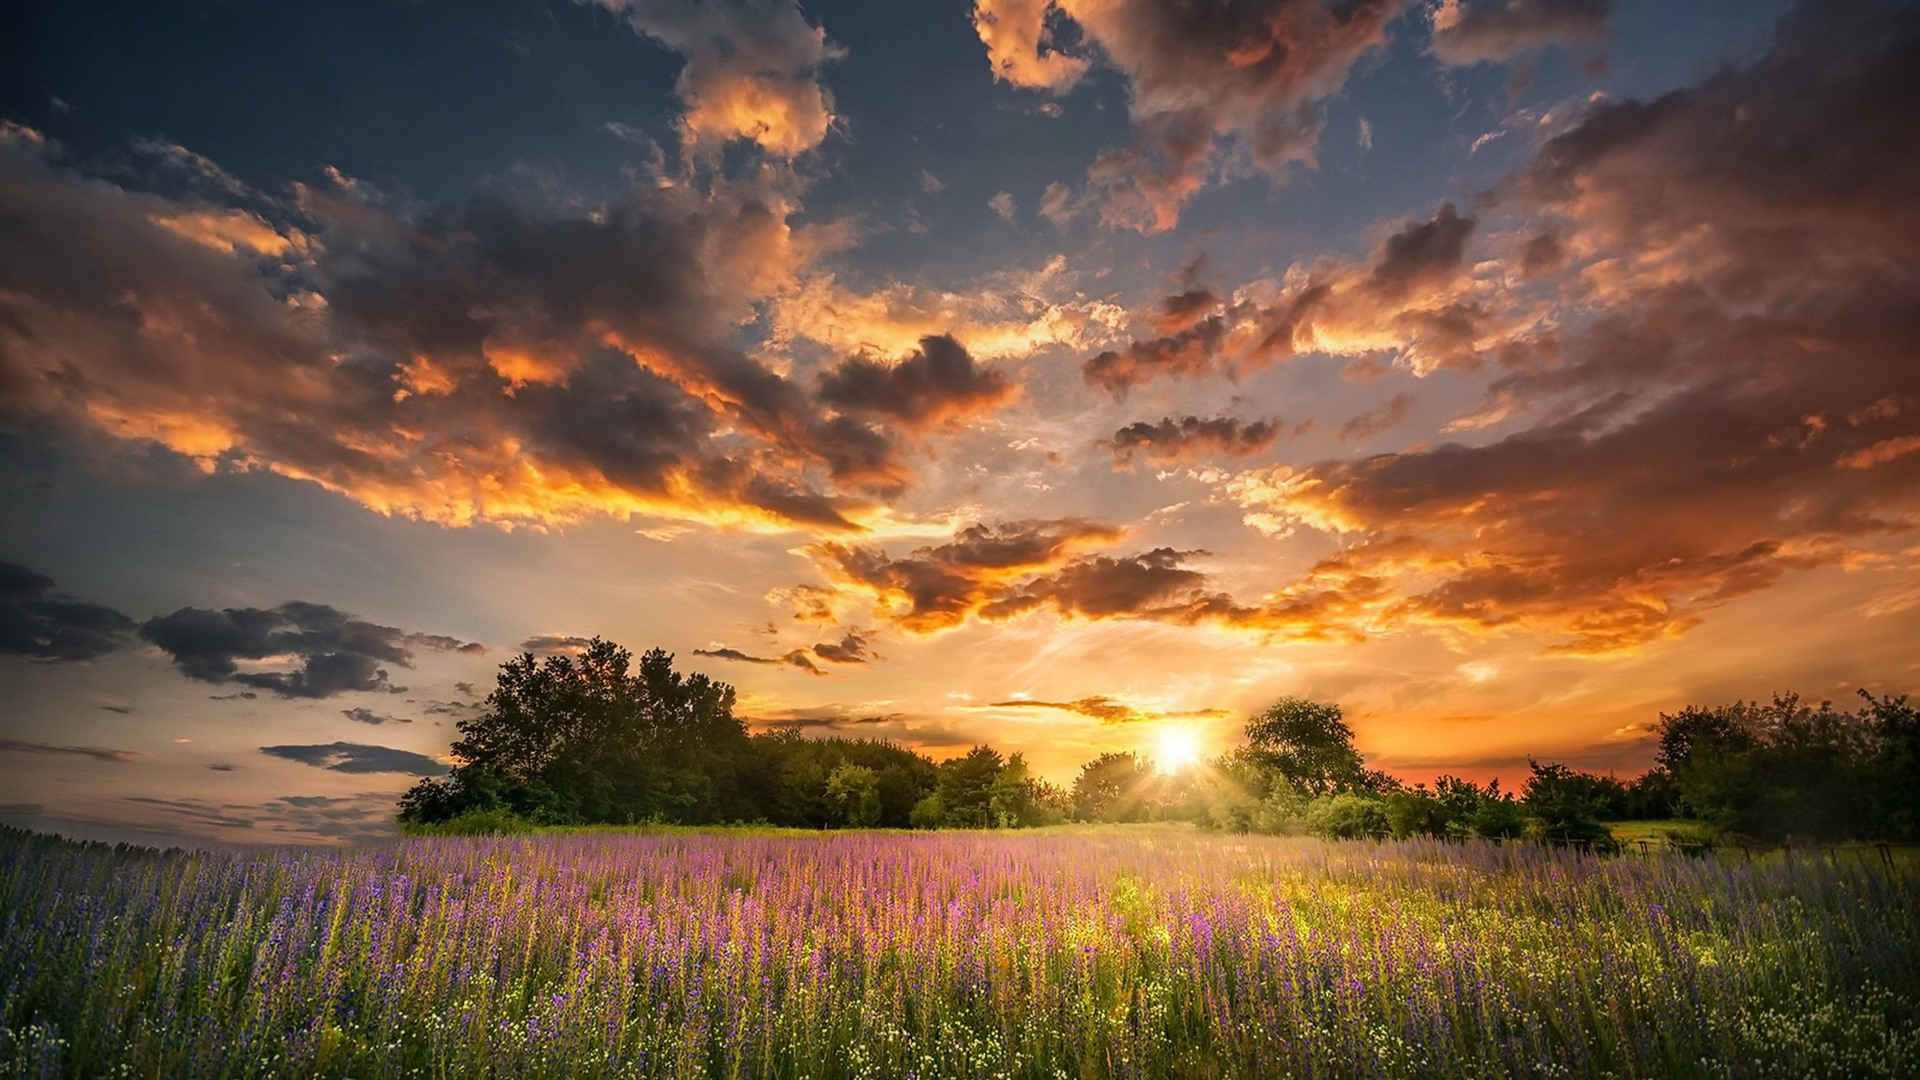 Wallpaper Summer Flowers Sunset Clouds Nature 1920x1200